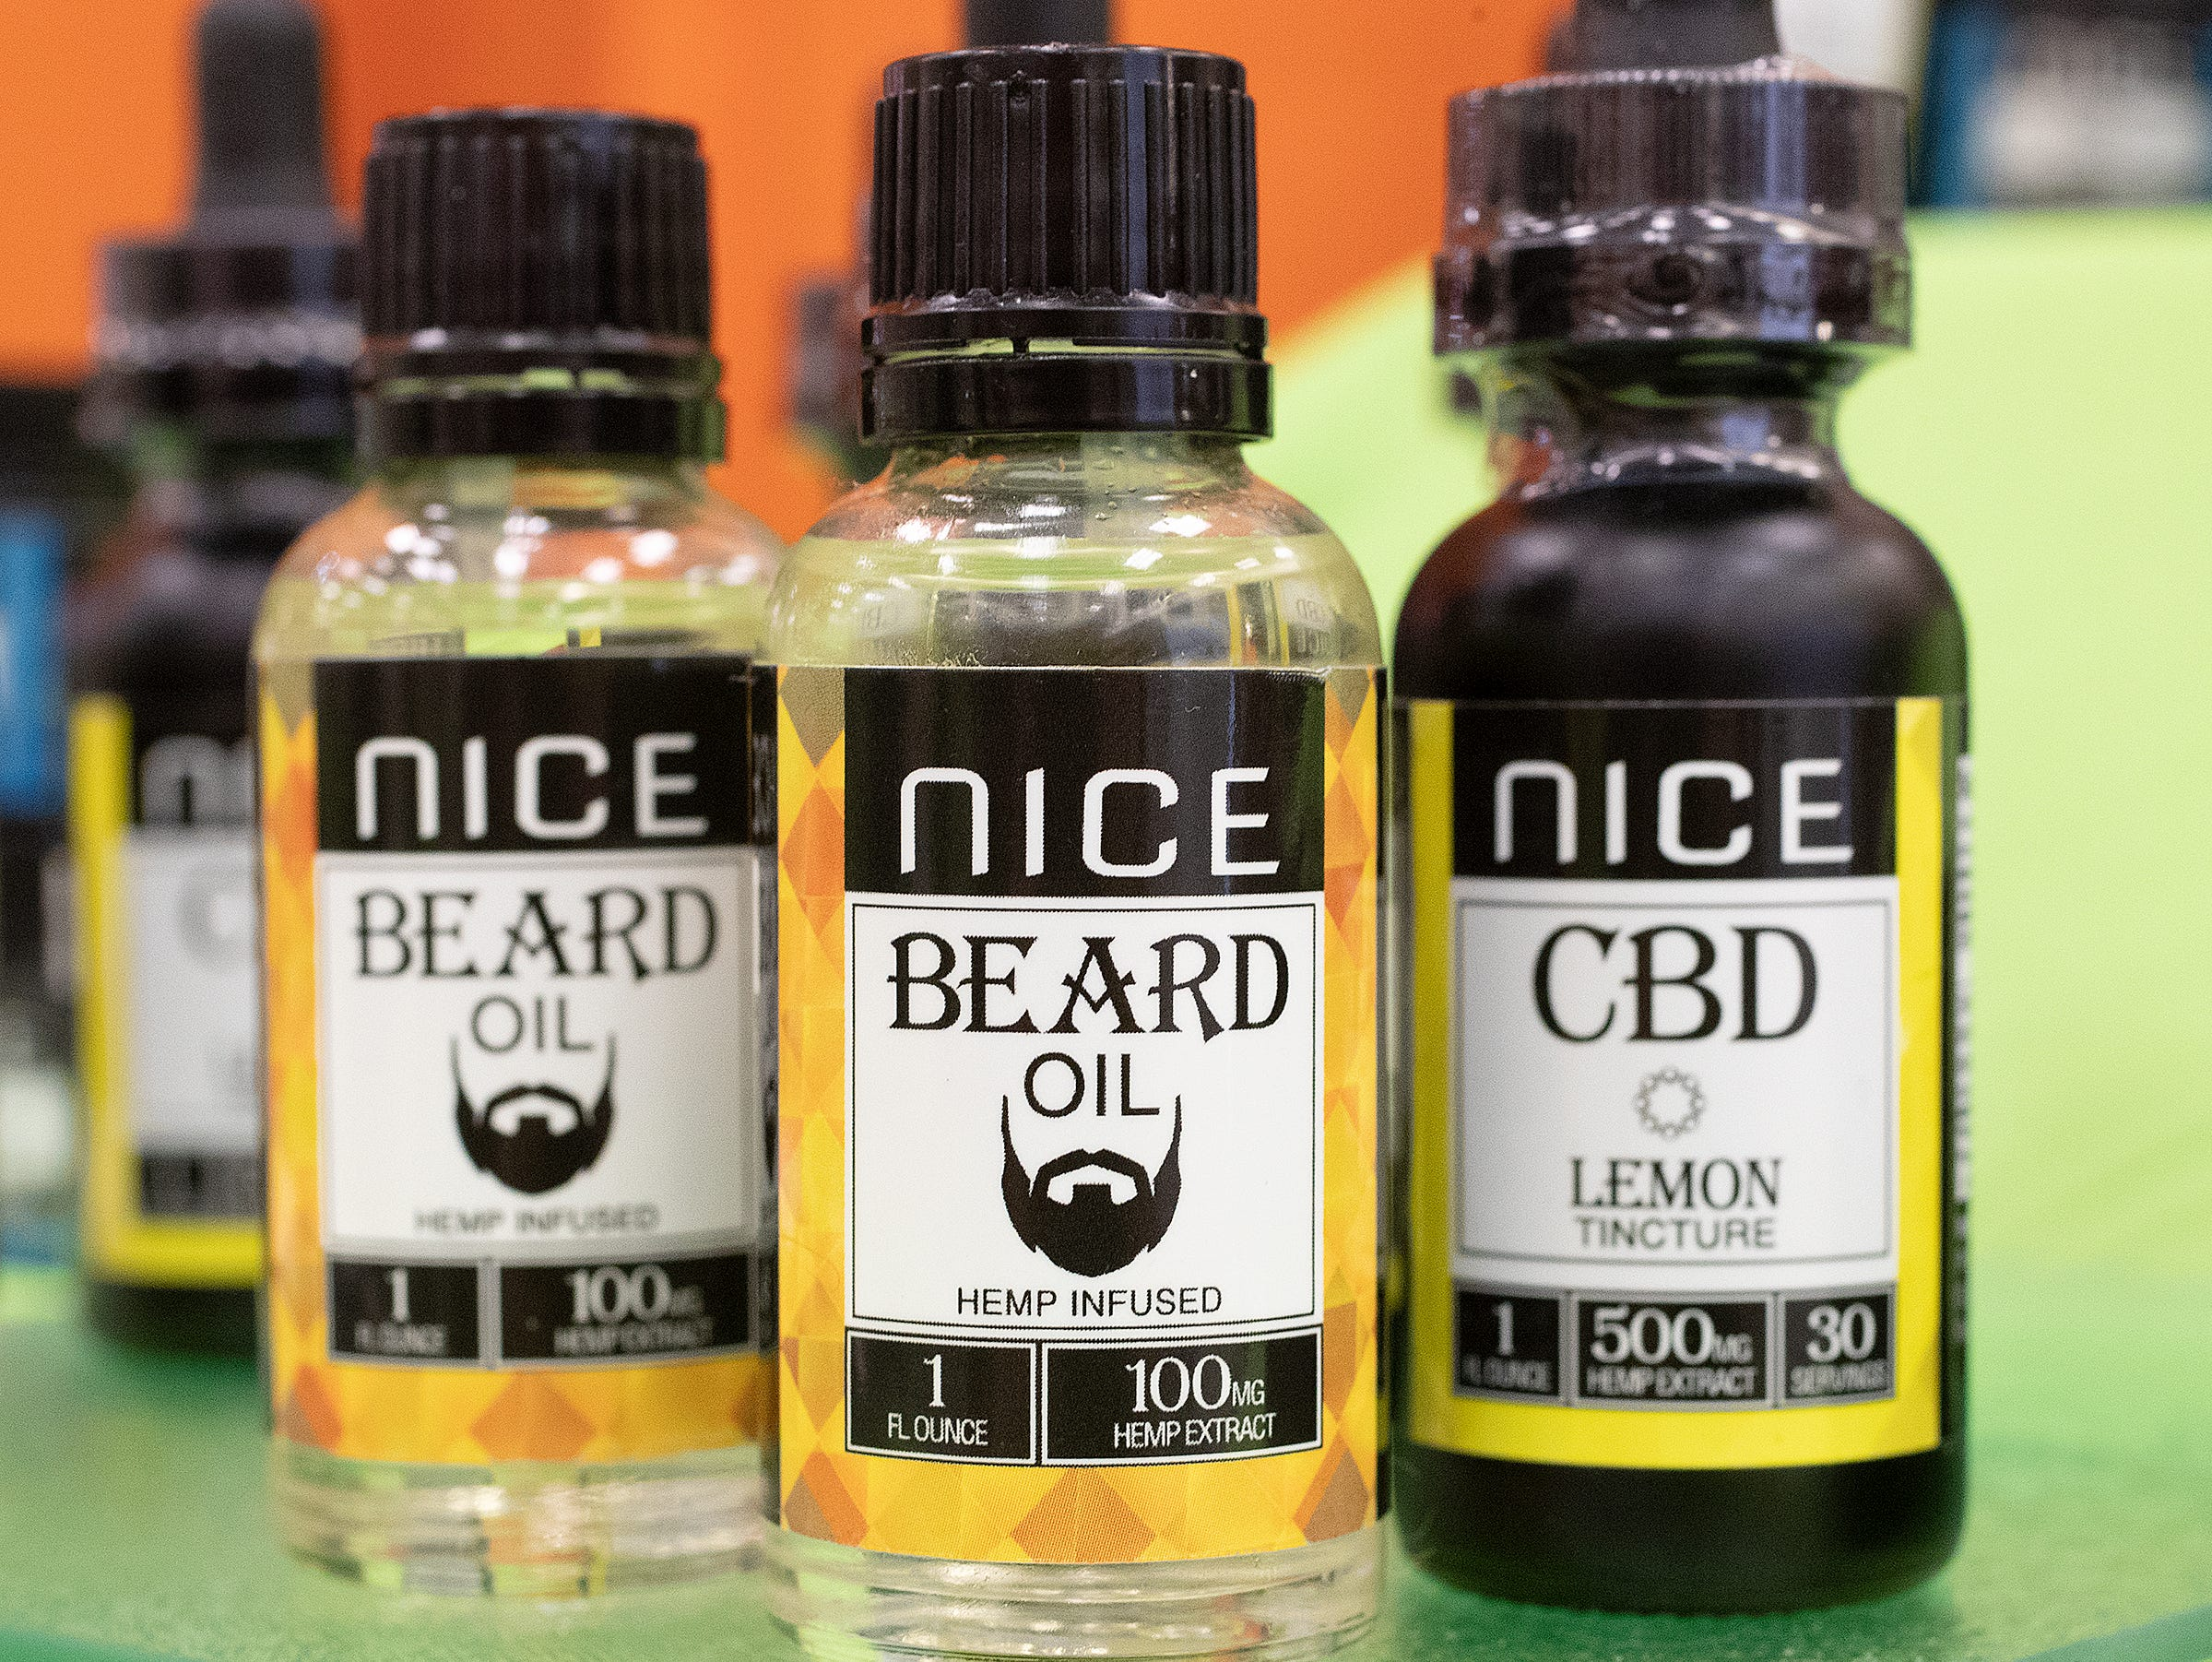 The Nice Corp Hemp Infused Beard Oil at the CBD Expo at the Marriott East in Indianapolis on Friday, Mar. 15, 2019.